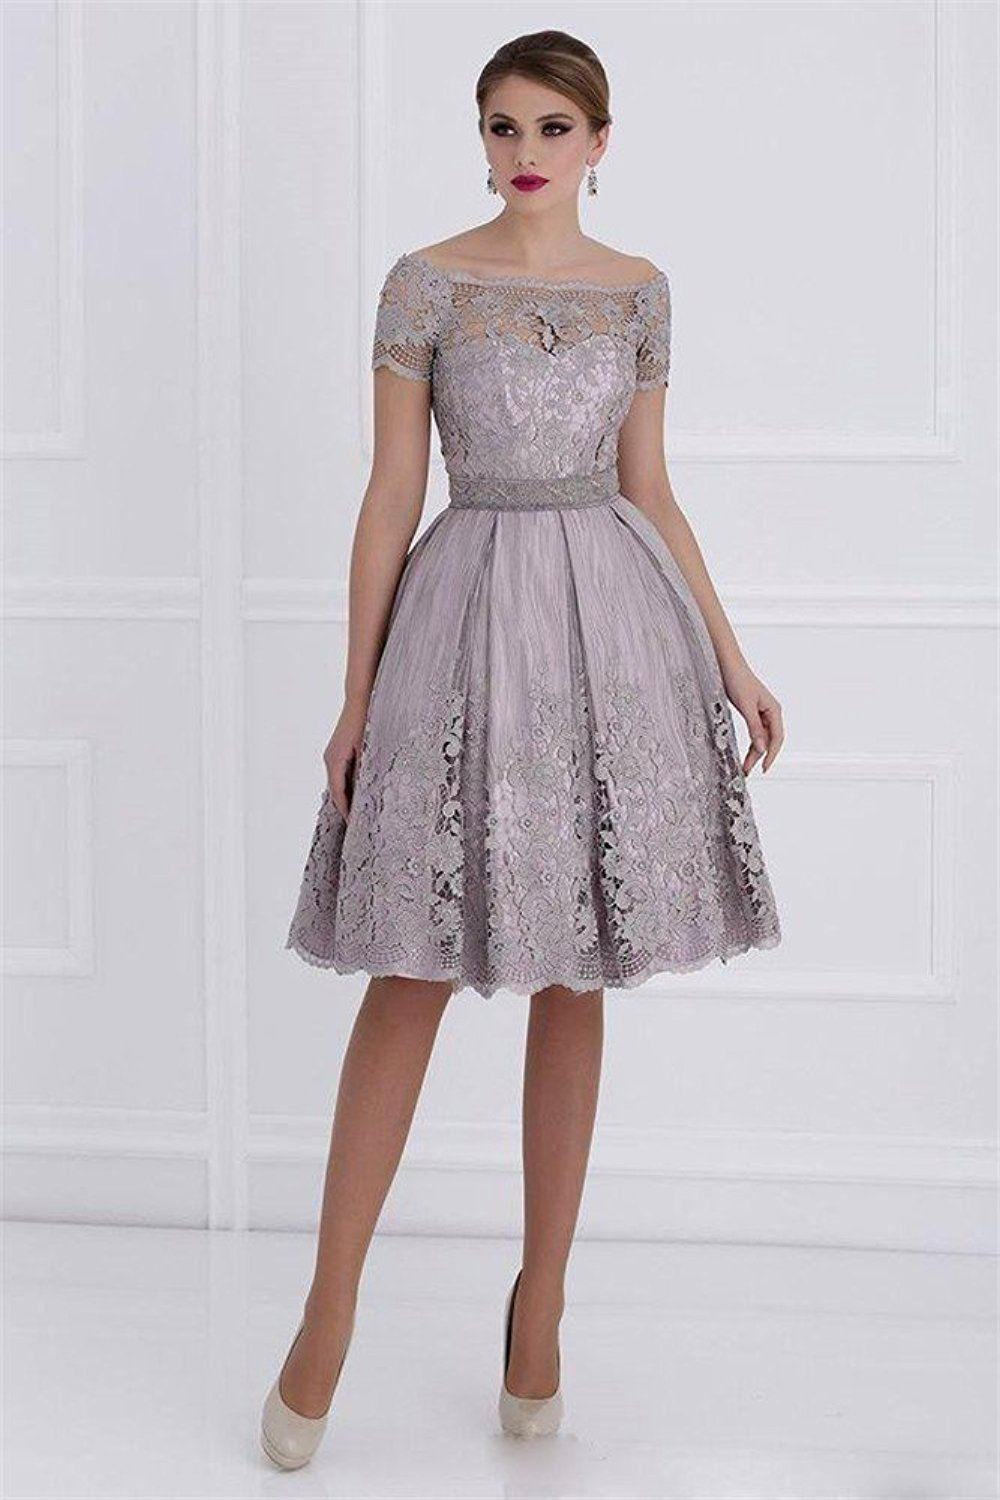 Wedding Suits for Mother